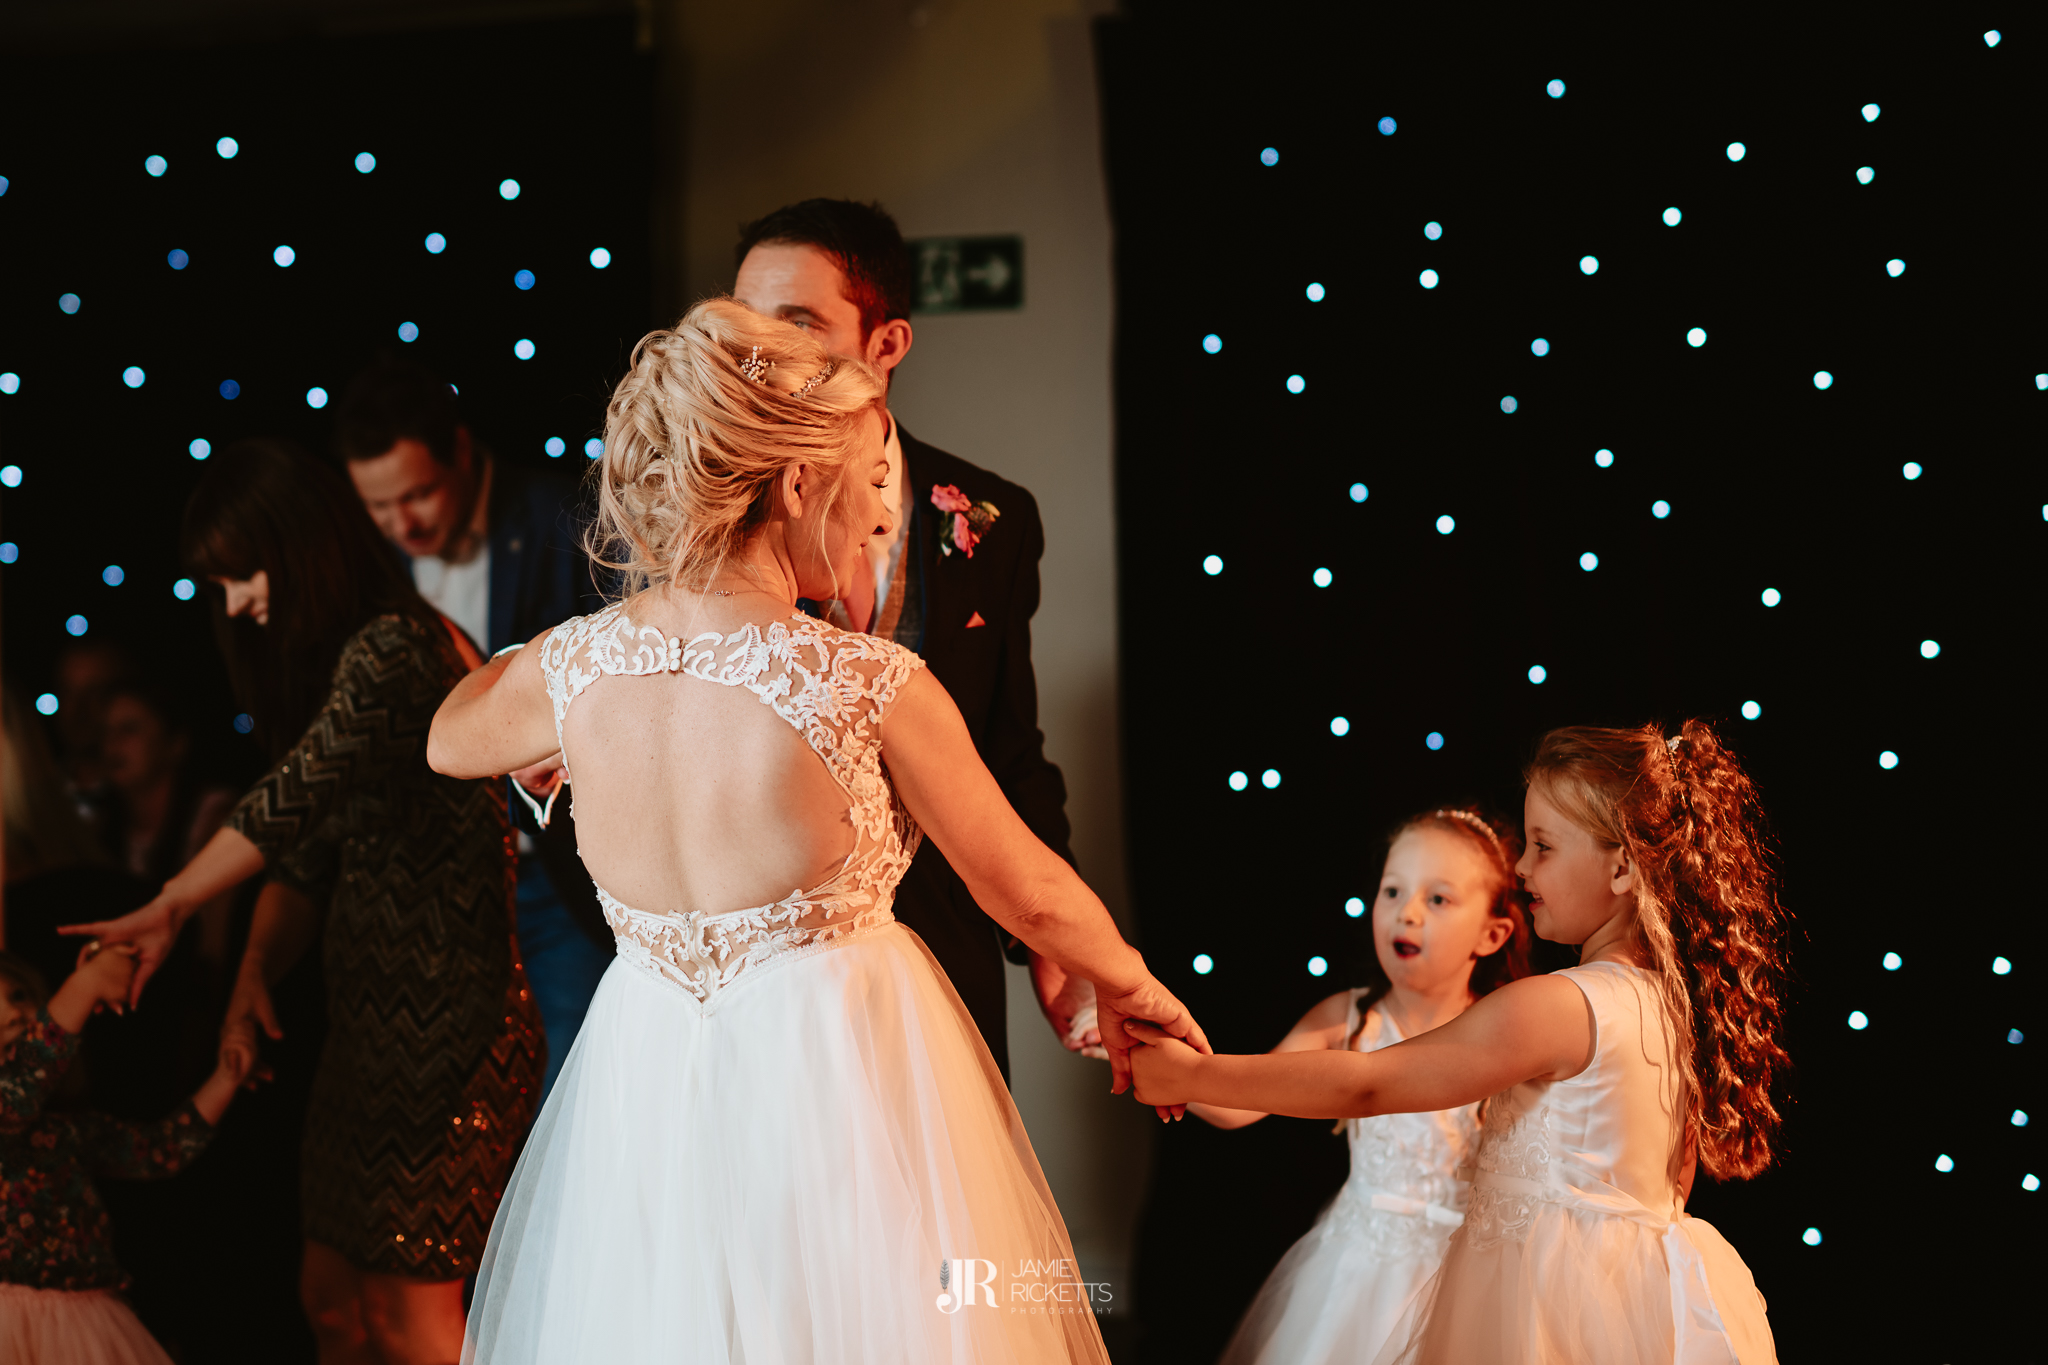 Wroxeter-Hotel-Wedding-Photography-In-Shropshire-By-Shropshire-Wedding-Photographer-Jamie-Ricketts-224.JPG